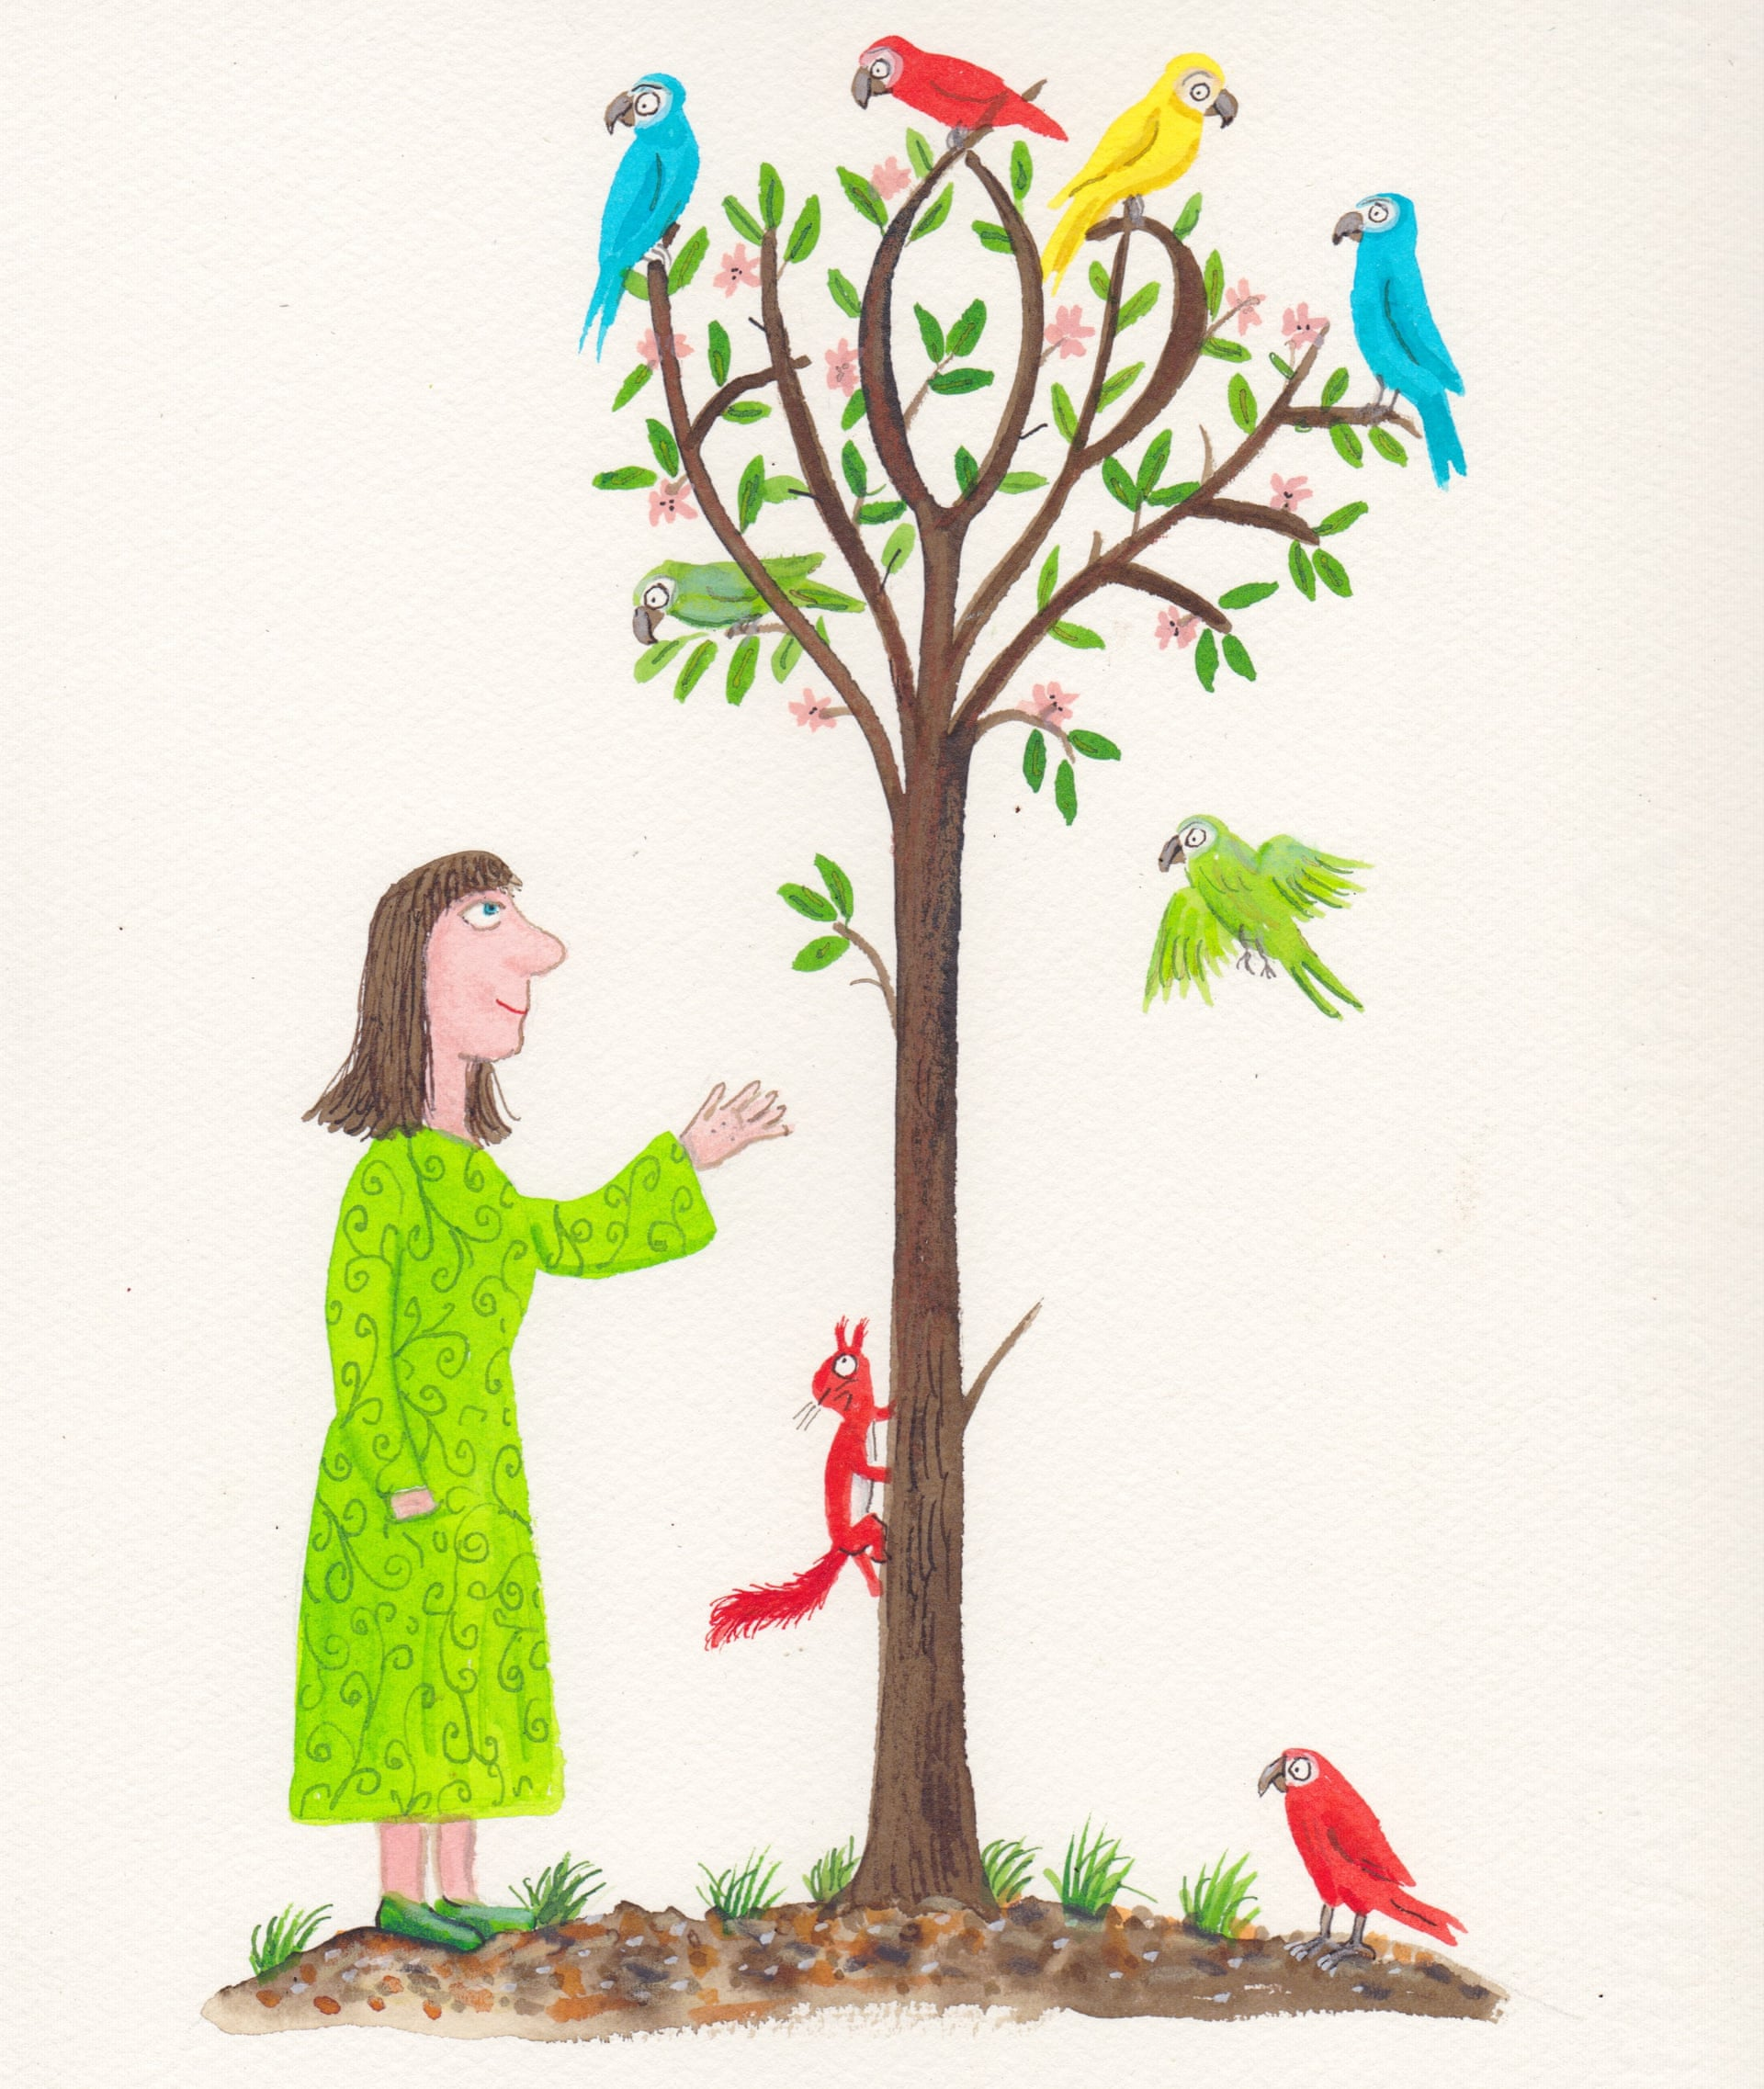 The Hope Tree - Illustration: Axel Scheffler